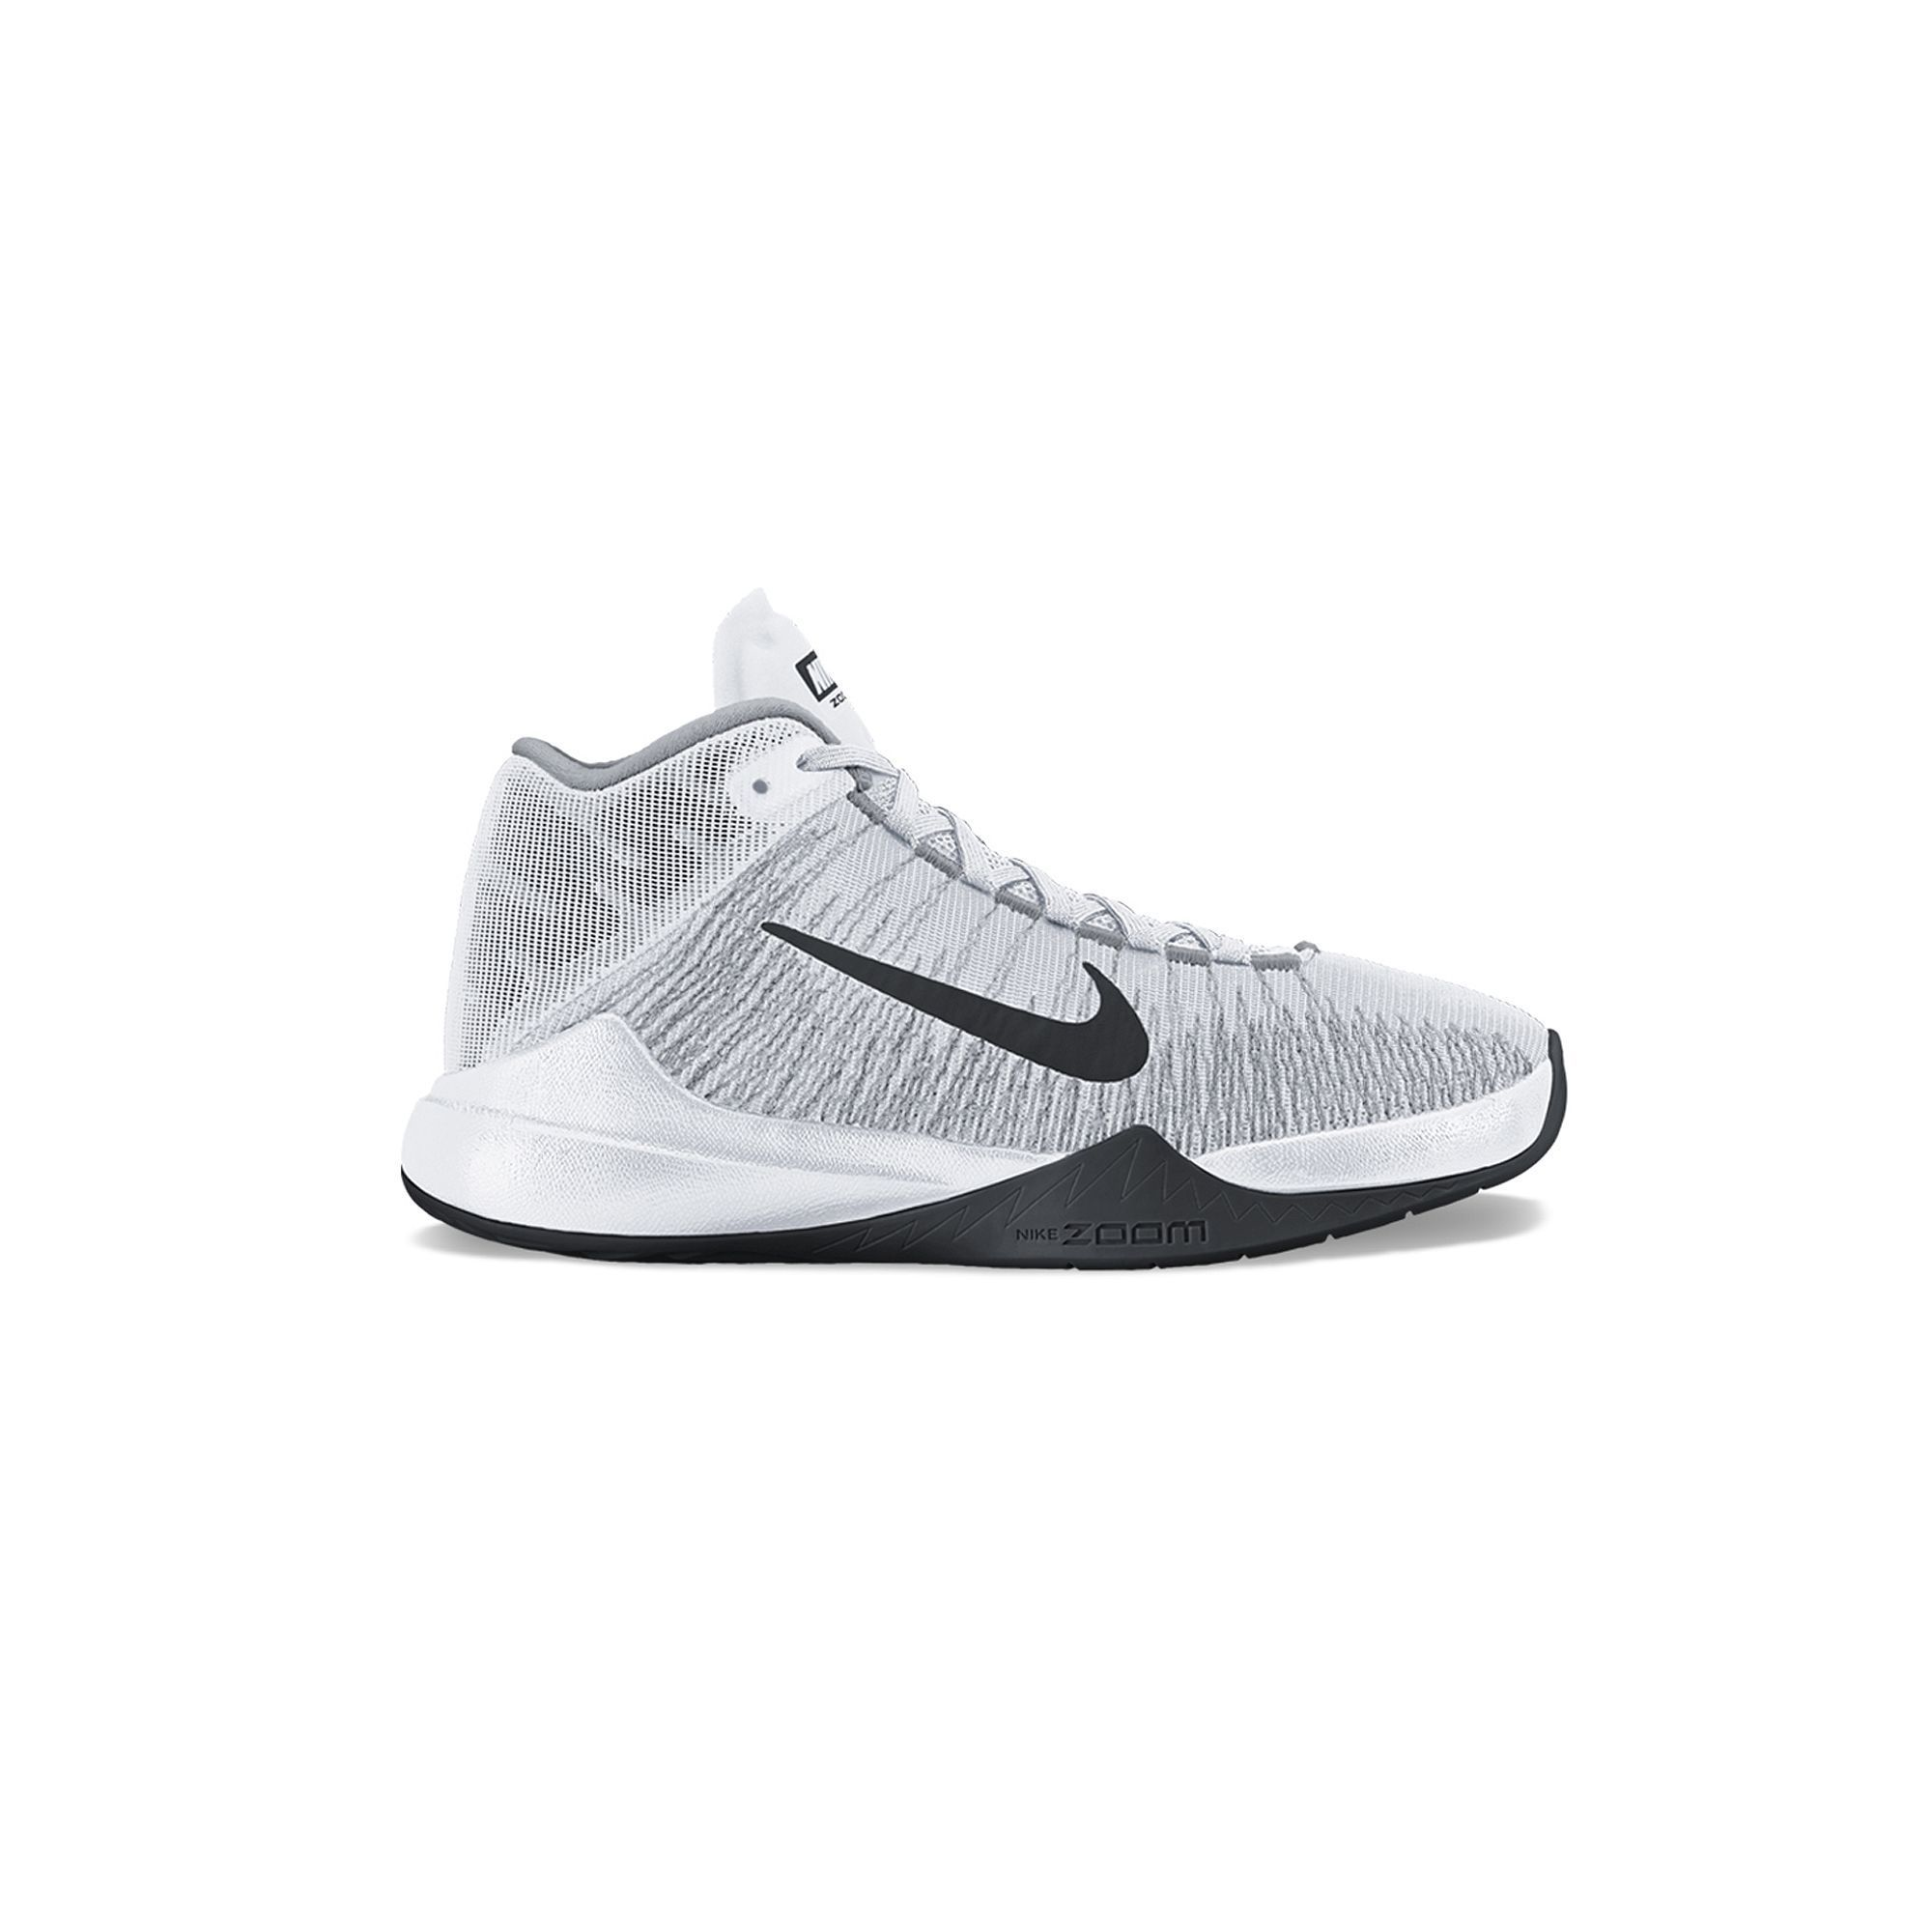 Nike Zoom Ascension Men's Basketball Shoes, Size: 11.5, White